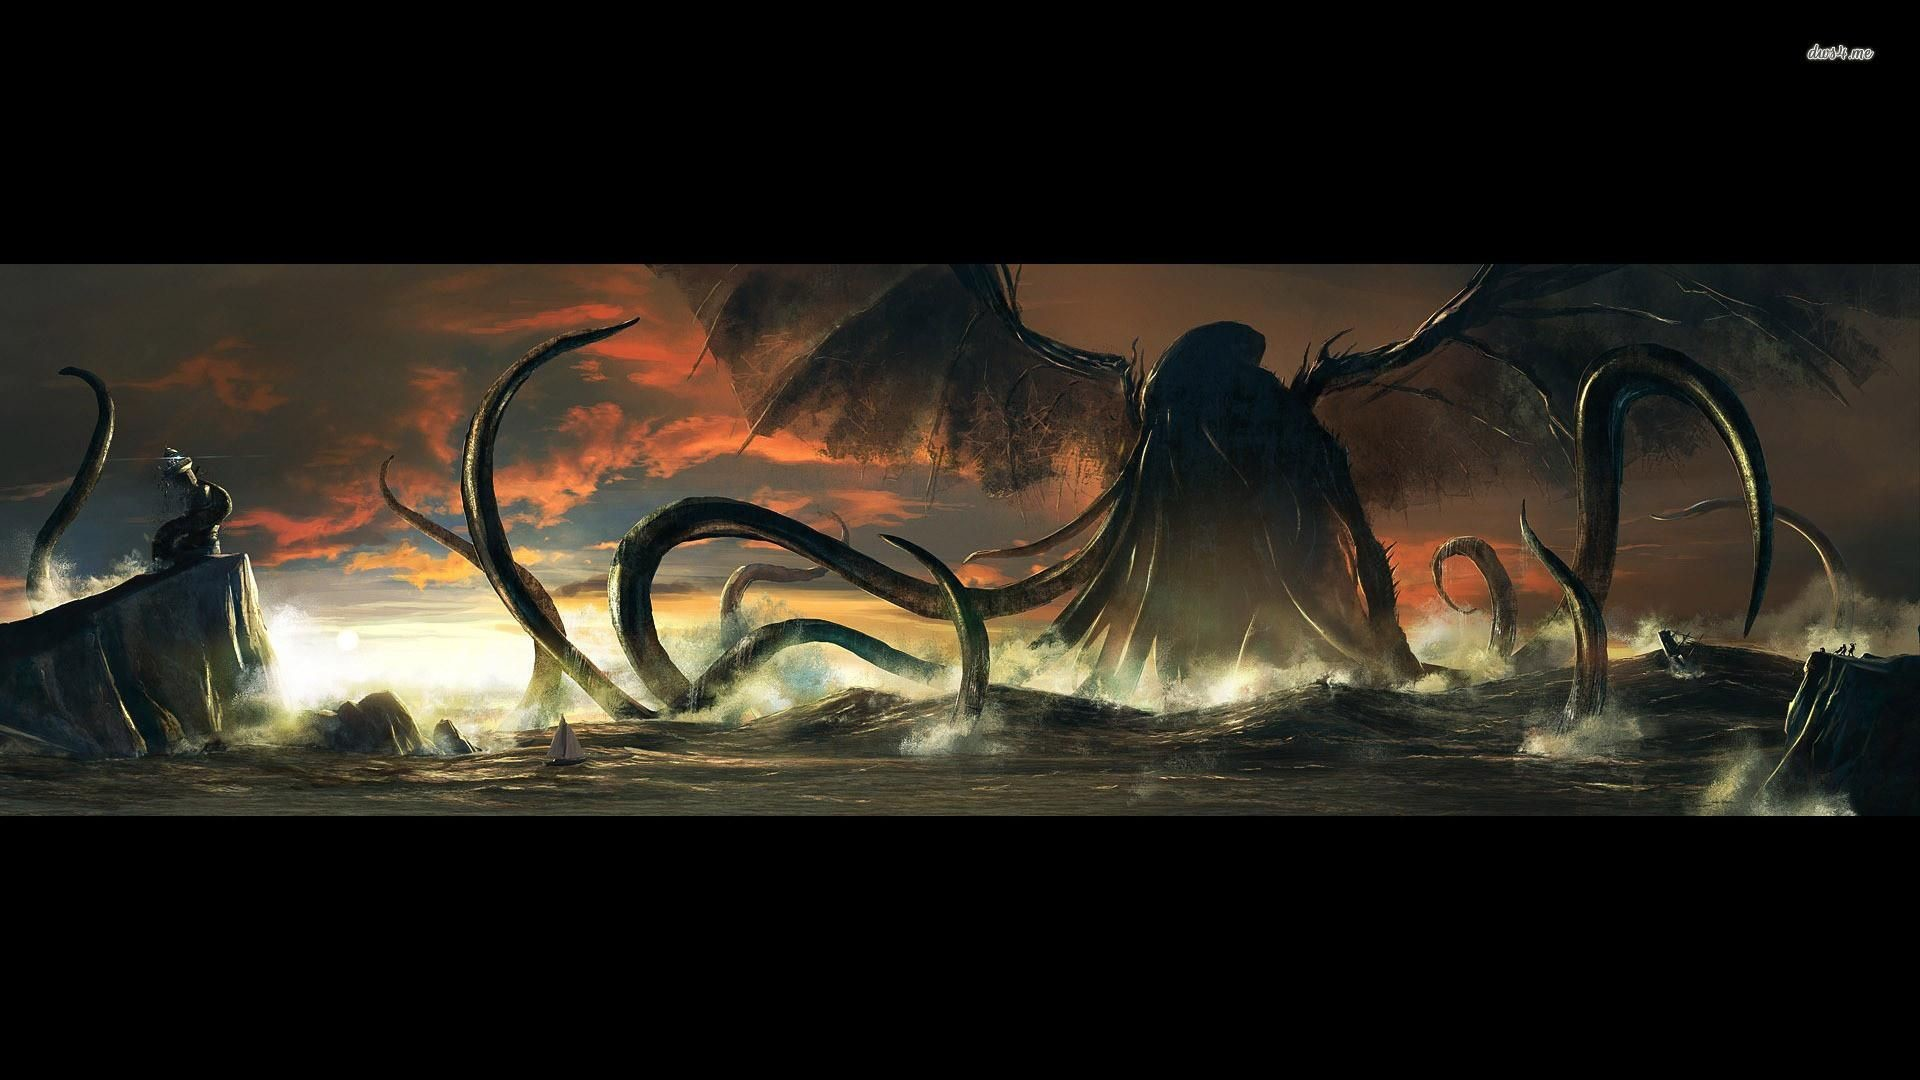 Res: 1920x1080, Cthulhu: Reality Cthulhu Wallpapers for PC & Mac, Laptop, Tablet, Mobile  Phone